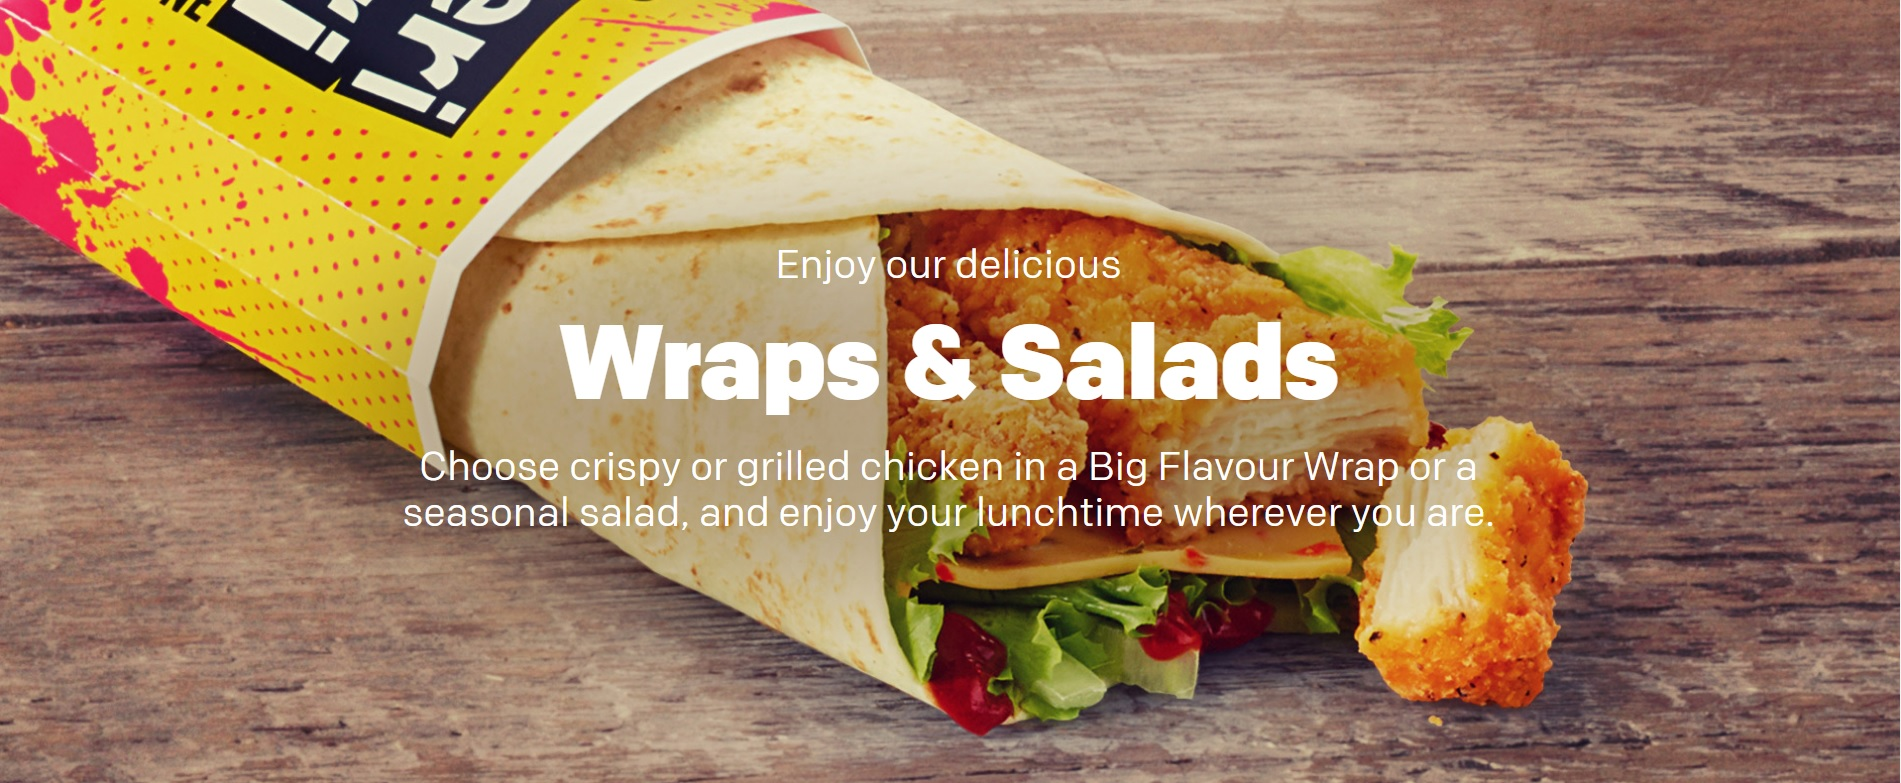 Wrap Of The Day Mcdonald S Uk What Is The Wrap Of The Day 2021